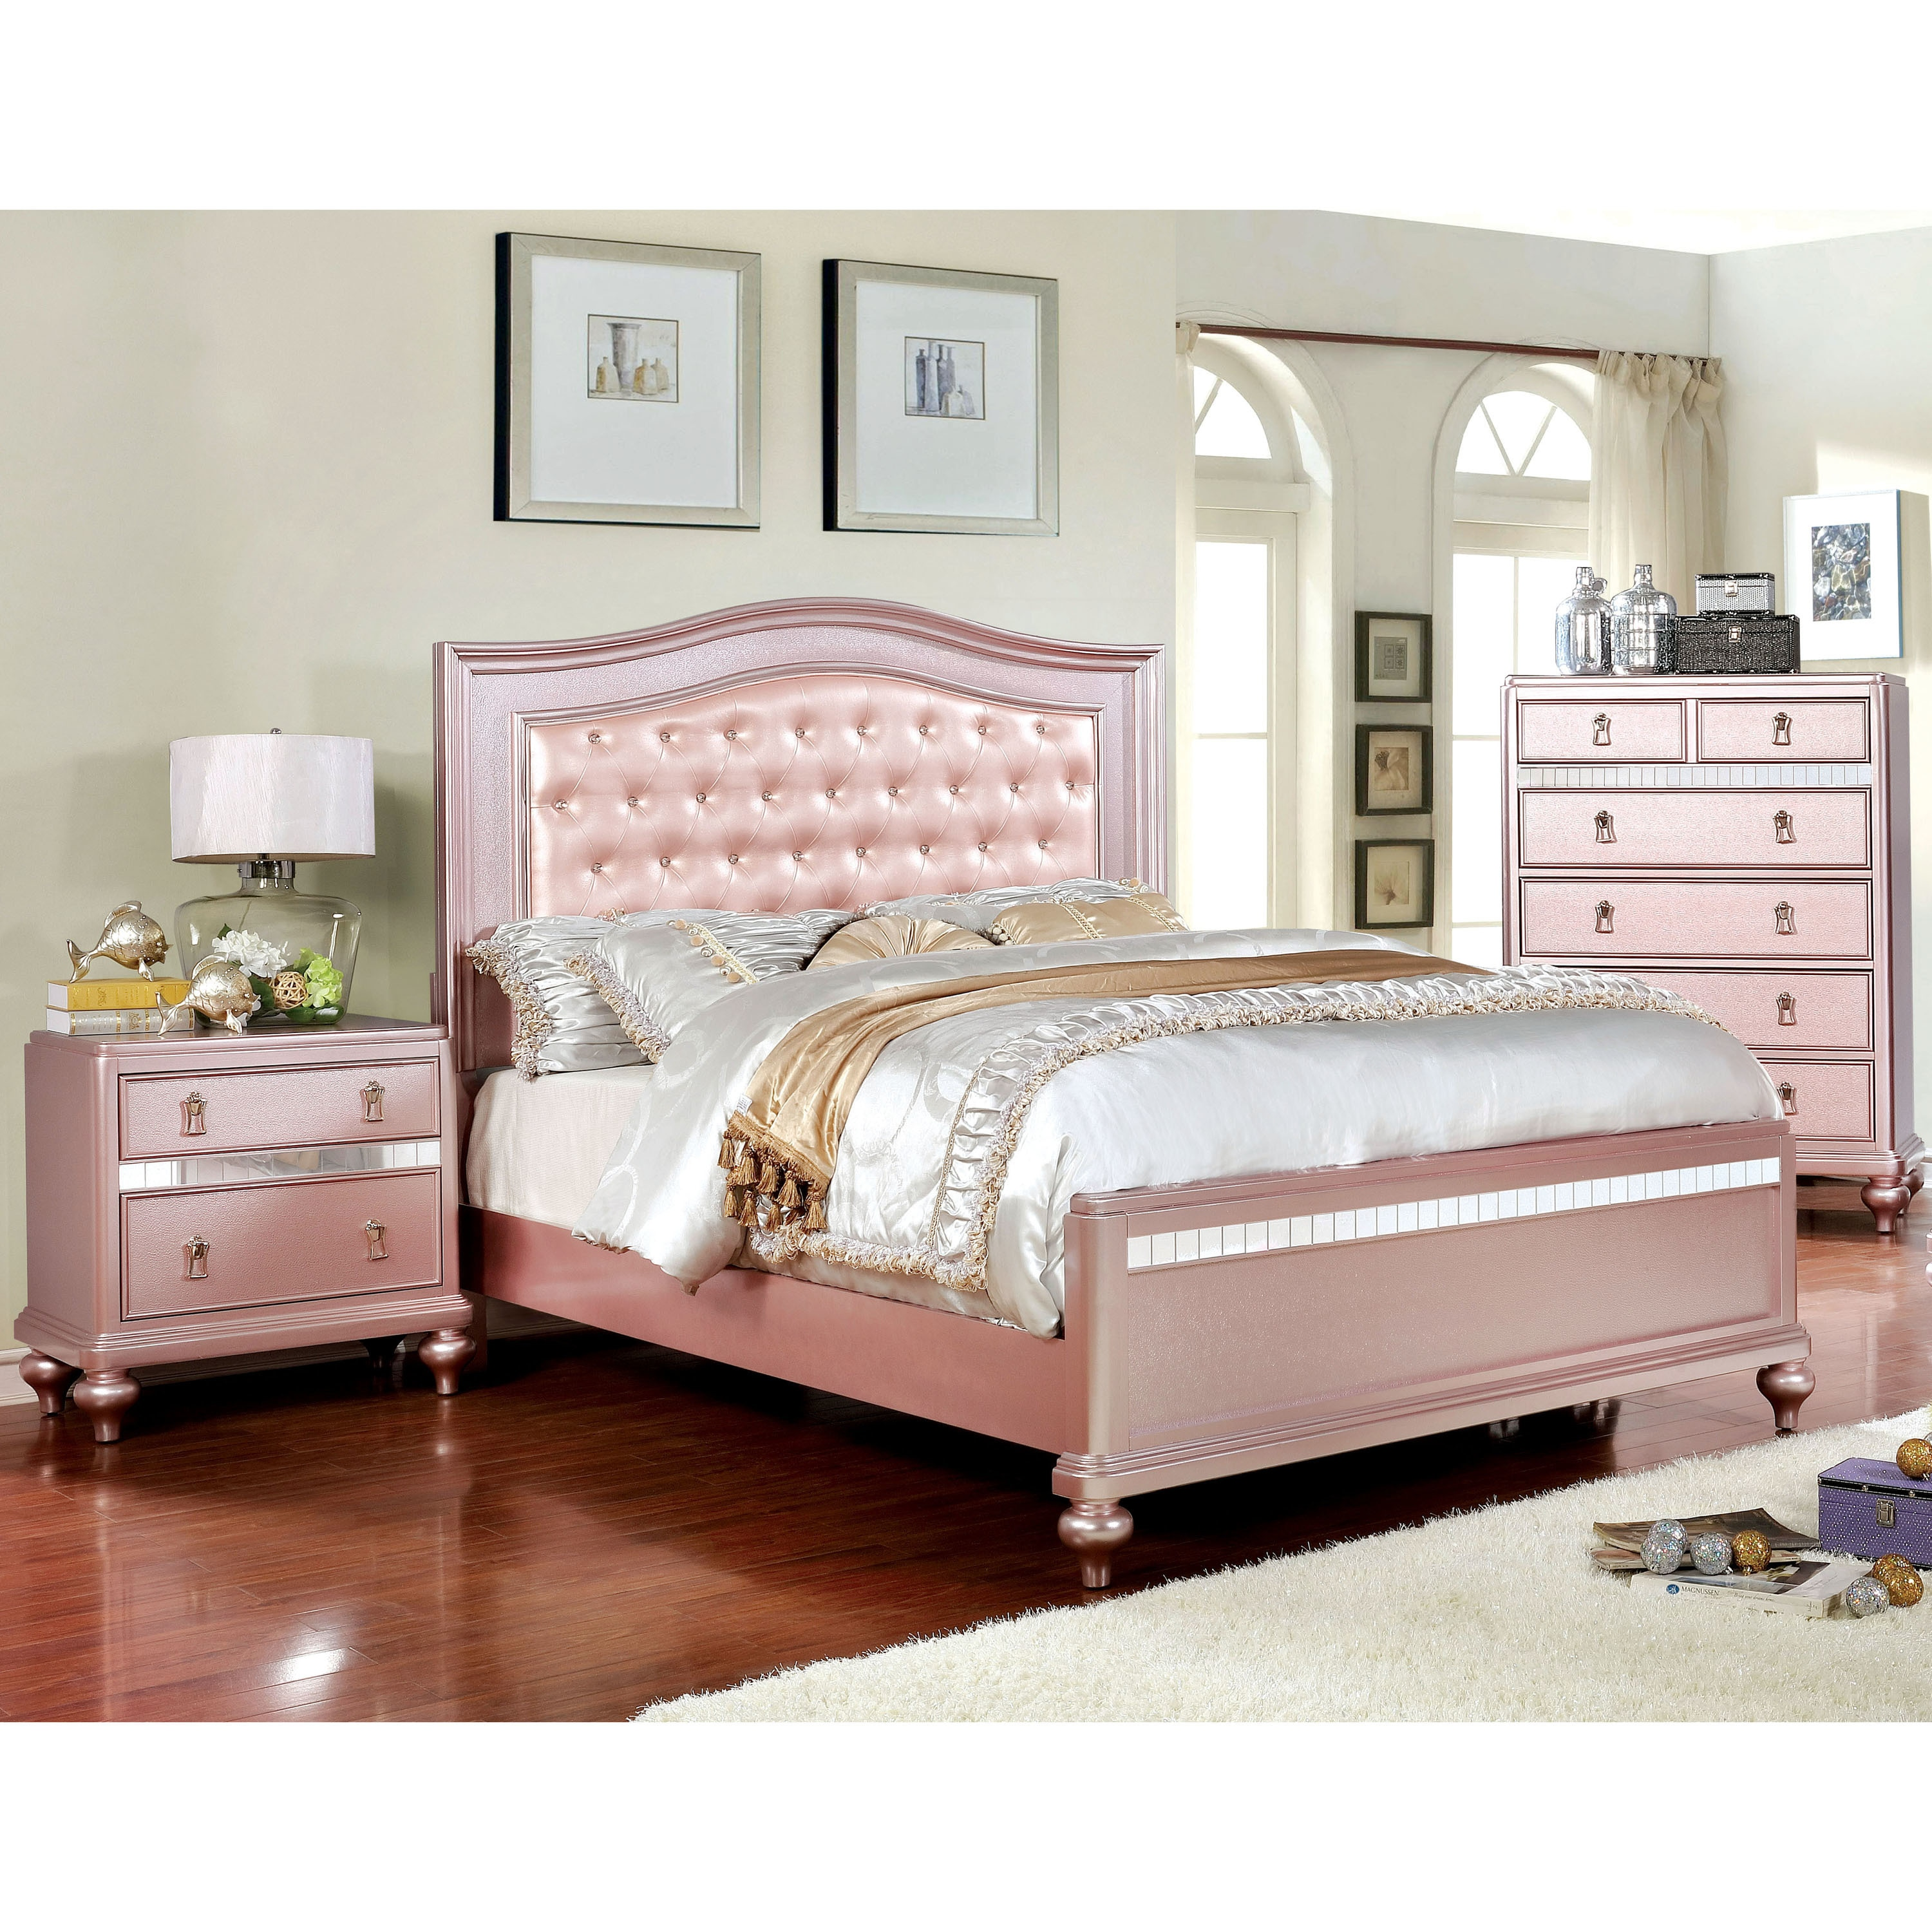 tufted bedroom furniture set furniture of america ayeda transitional button tufted queensize bed buy gold beds online at overstockcom our best bedroom